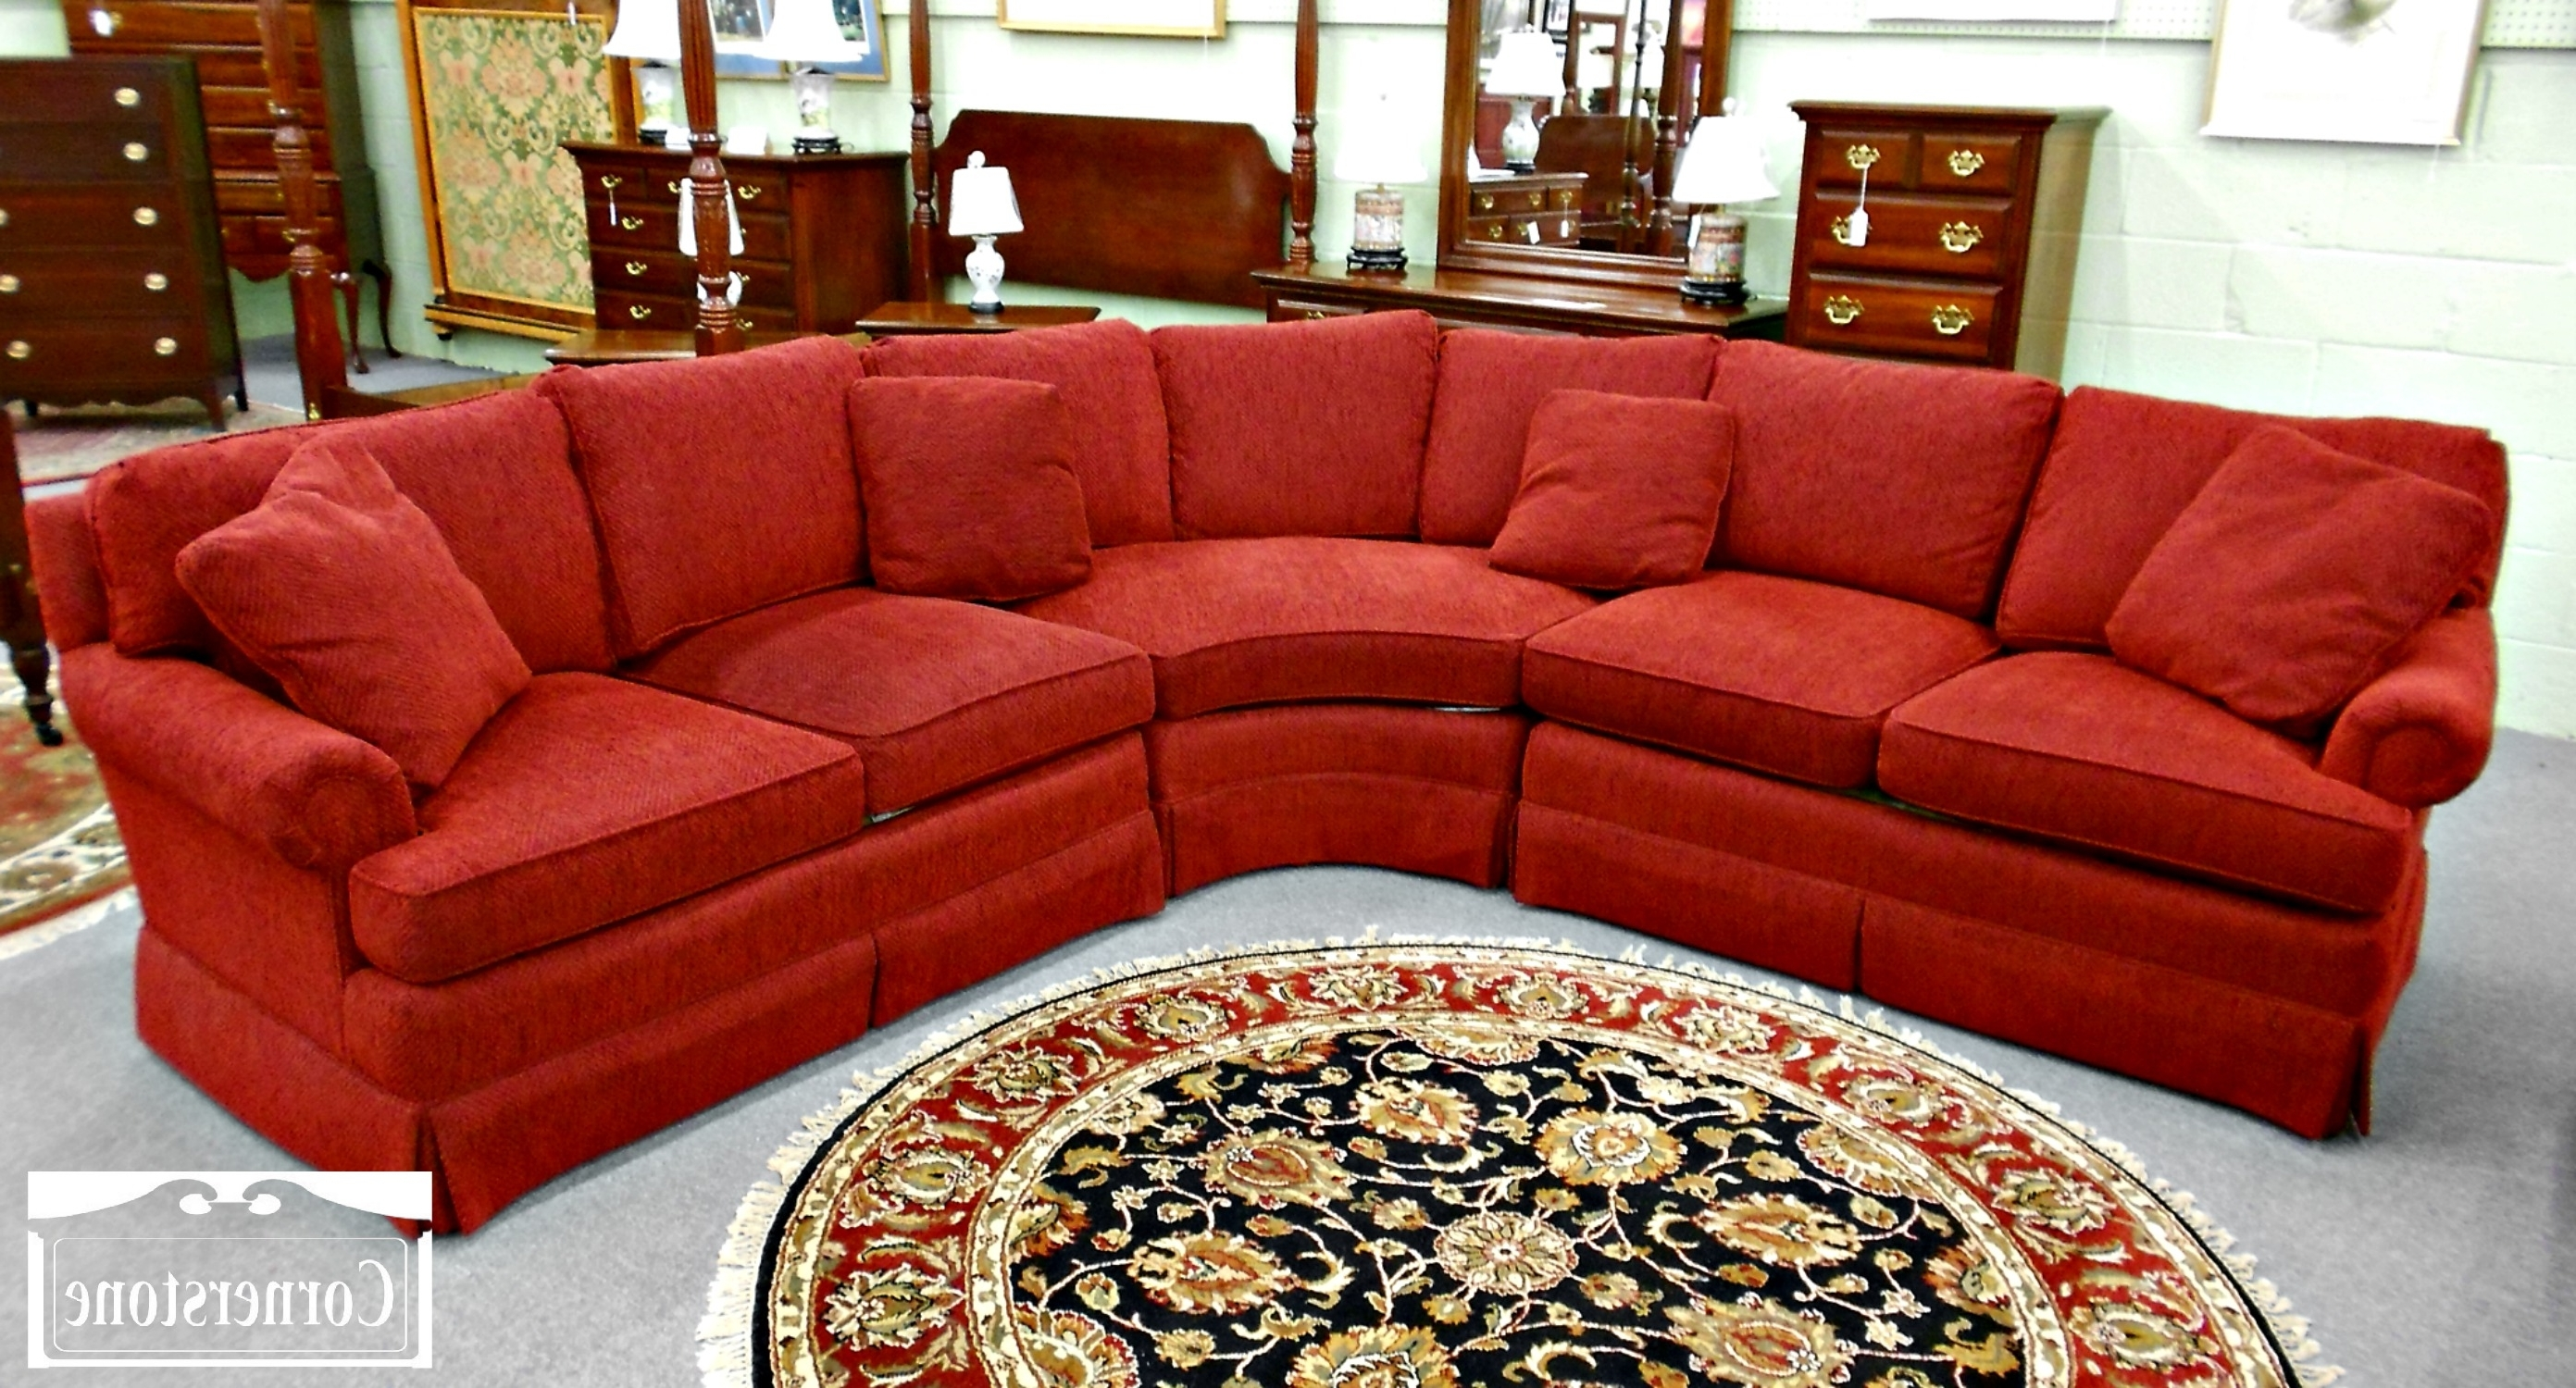 Red Sectional Sofas Within Newest Curved Red Velvet Sectional Sofa With Square Cushions And Back (View 15 of 15)